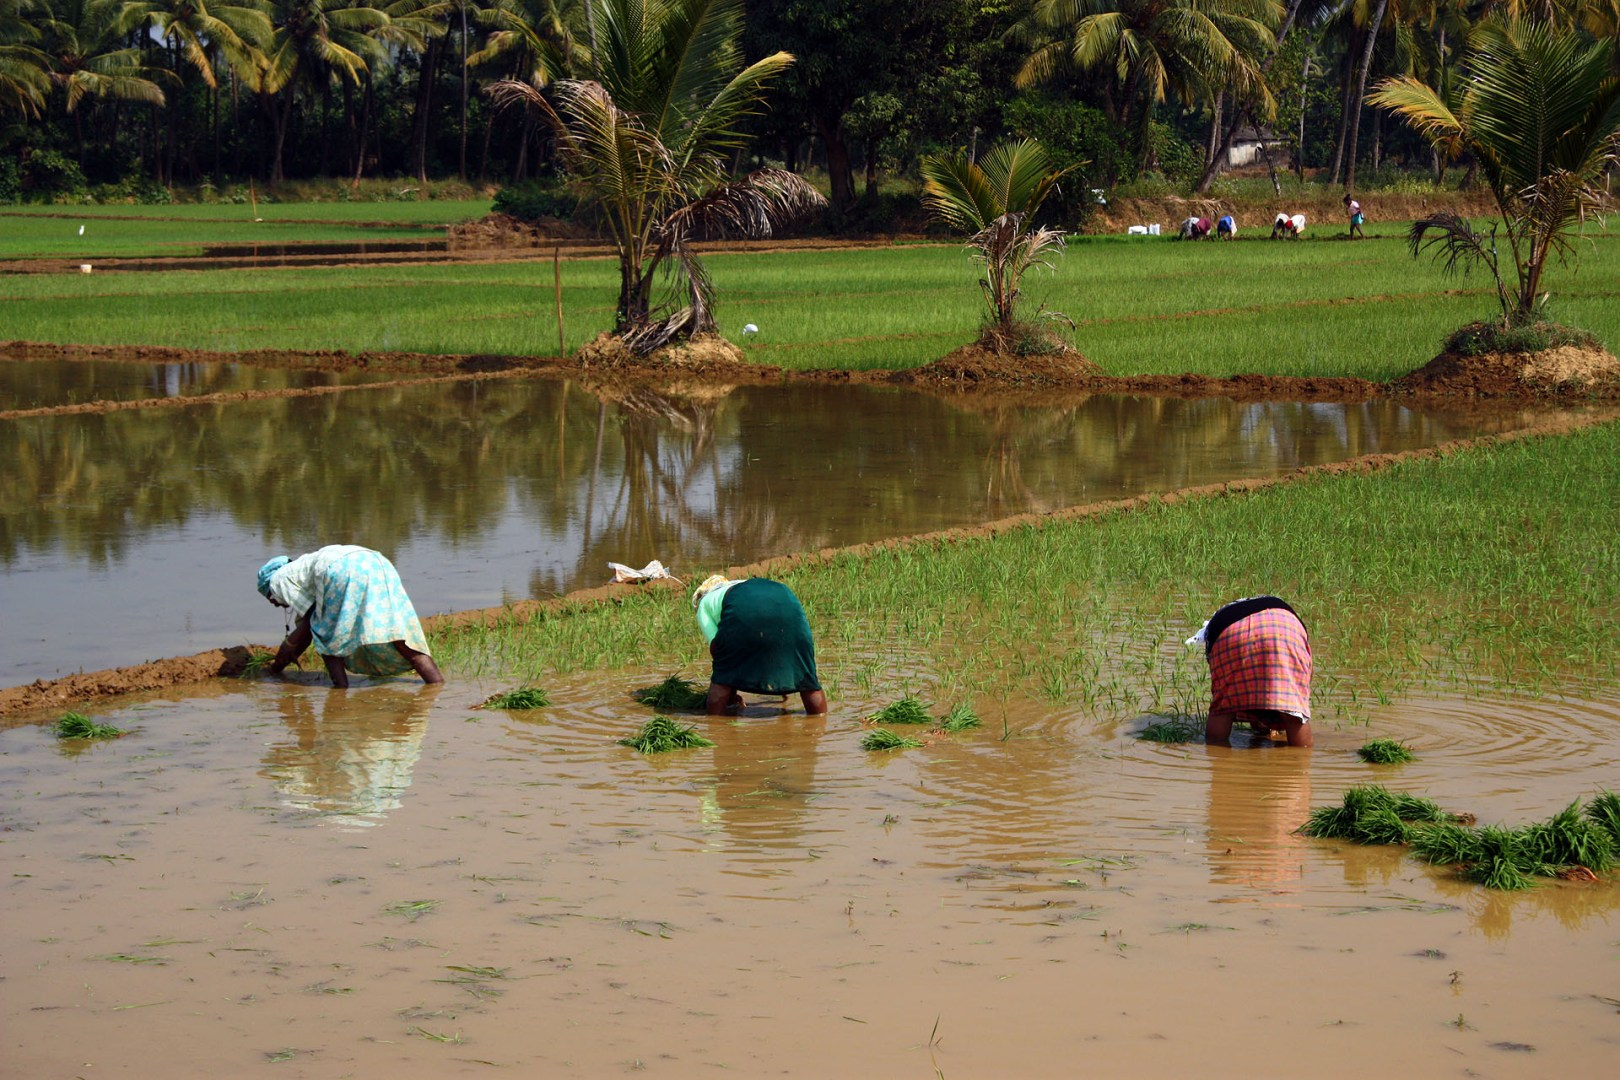 Workers in the paddy fields